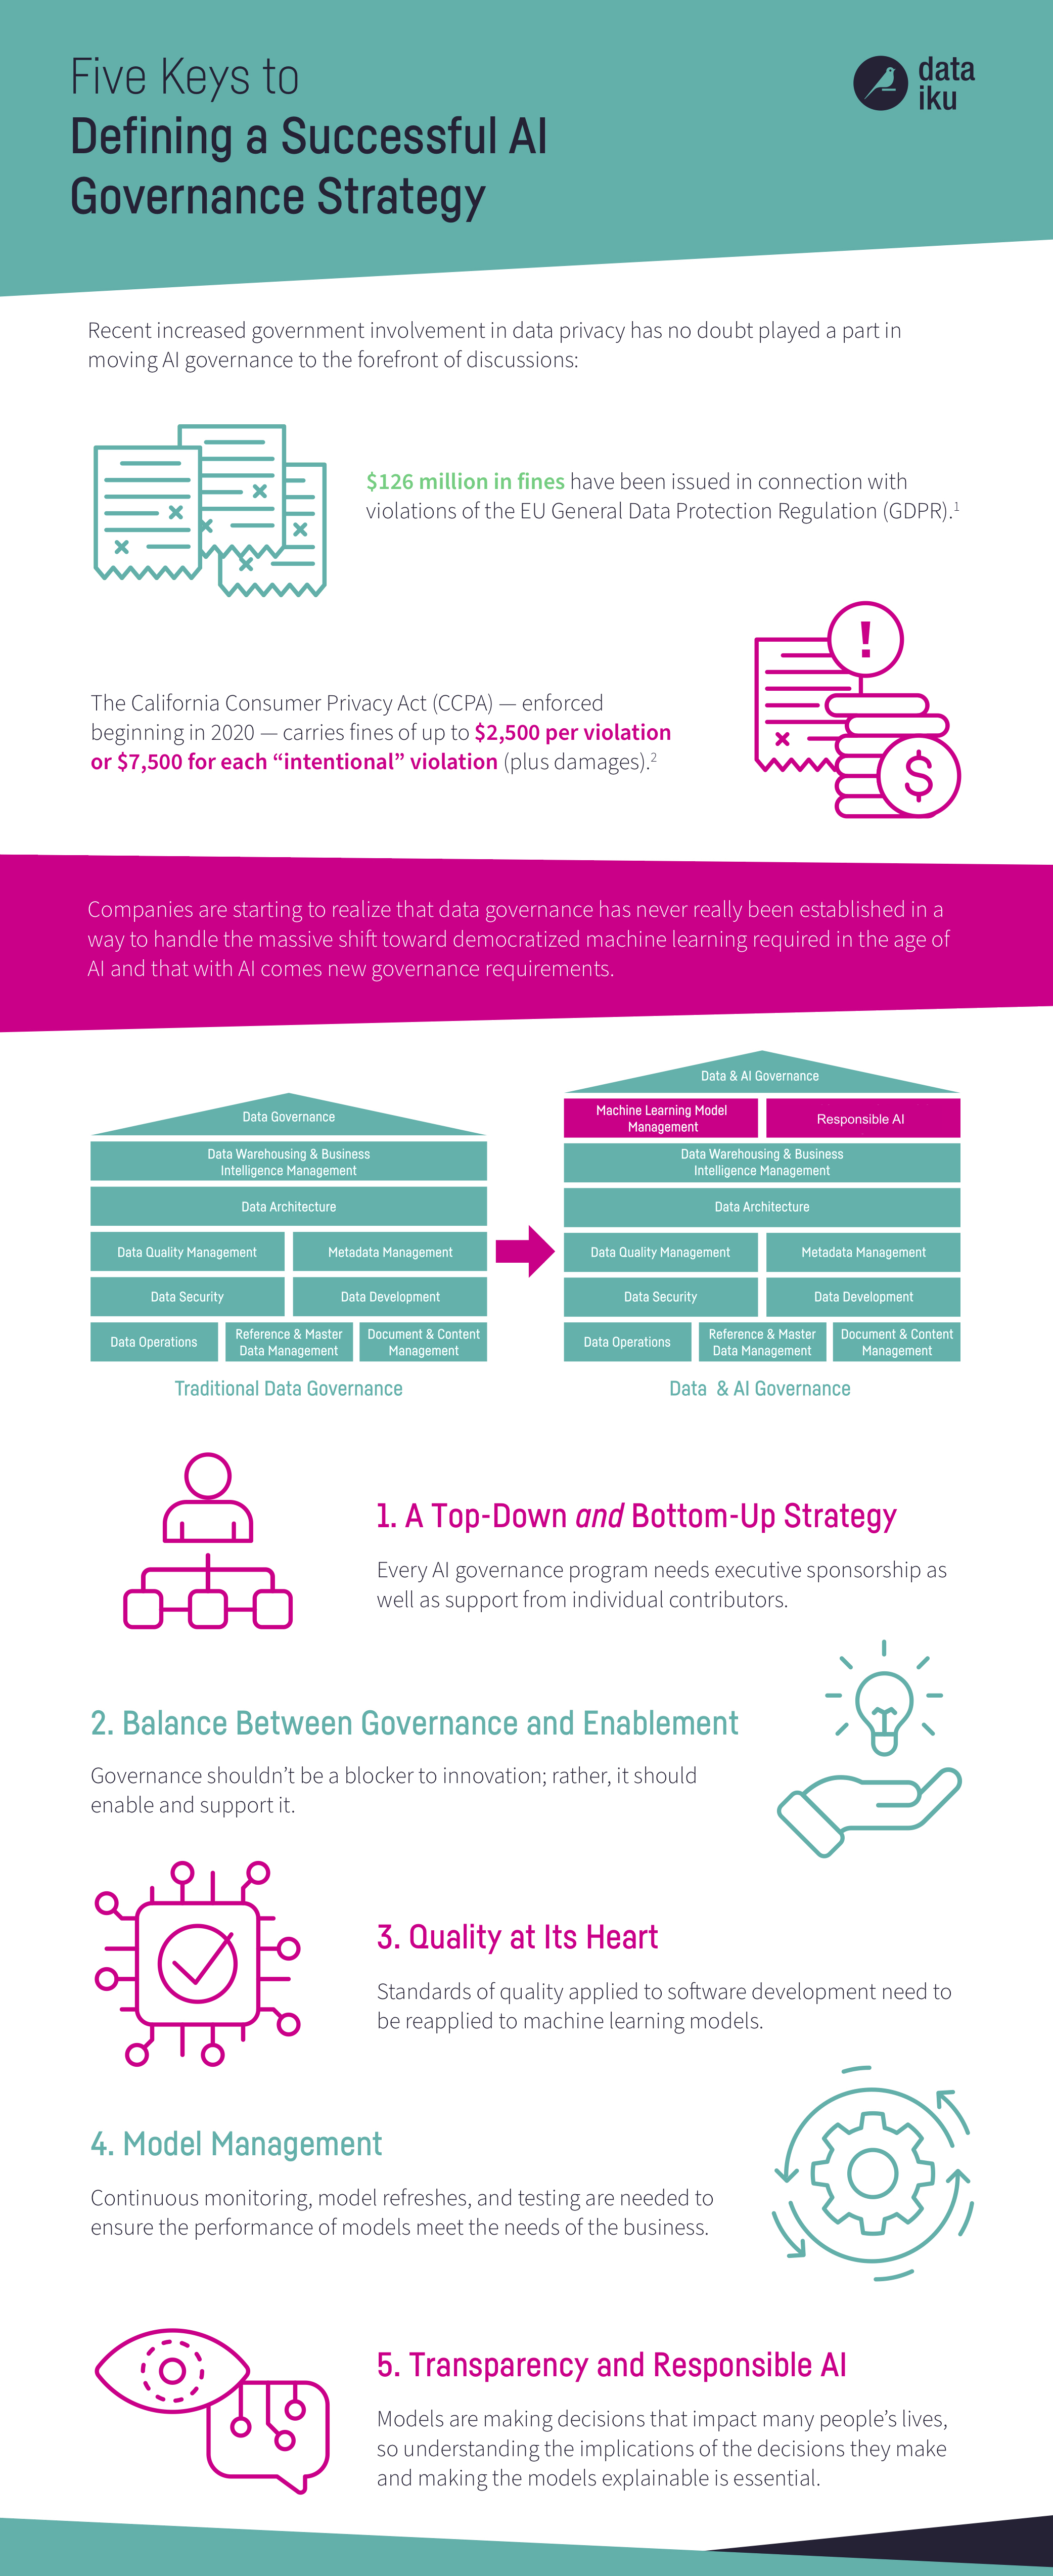 CORRECTED-5-keys-to-defining-a-successful-ai-governance-strategy-INFOGRAPHIC